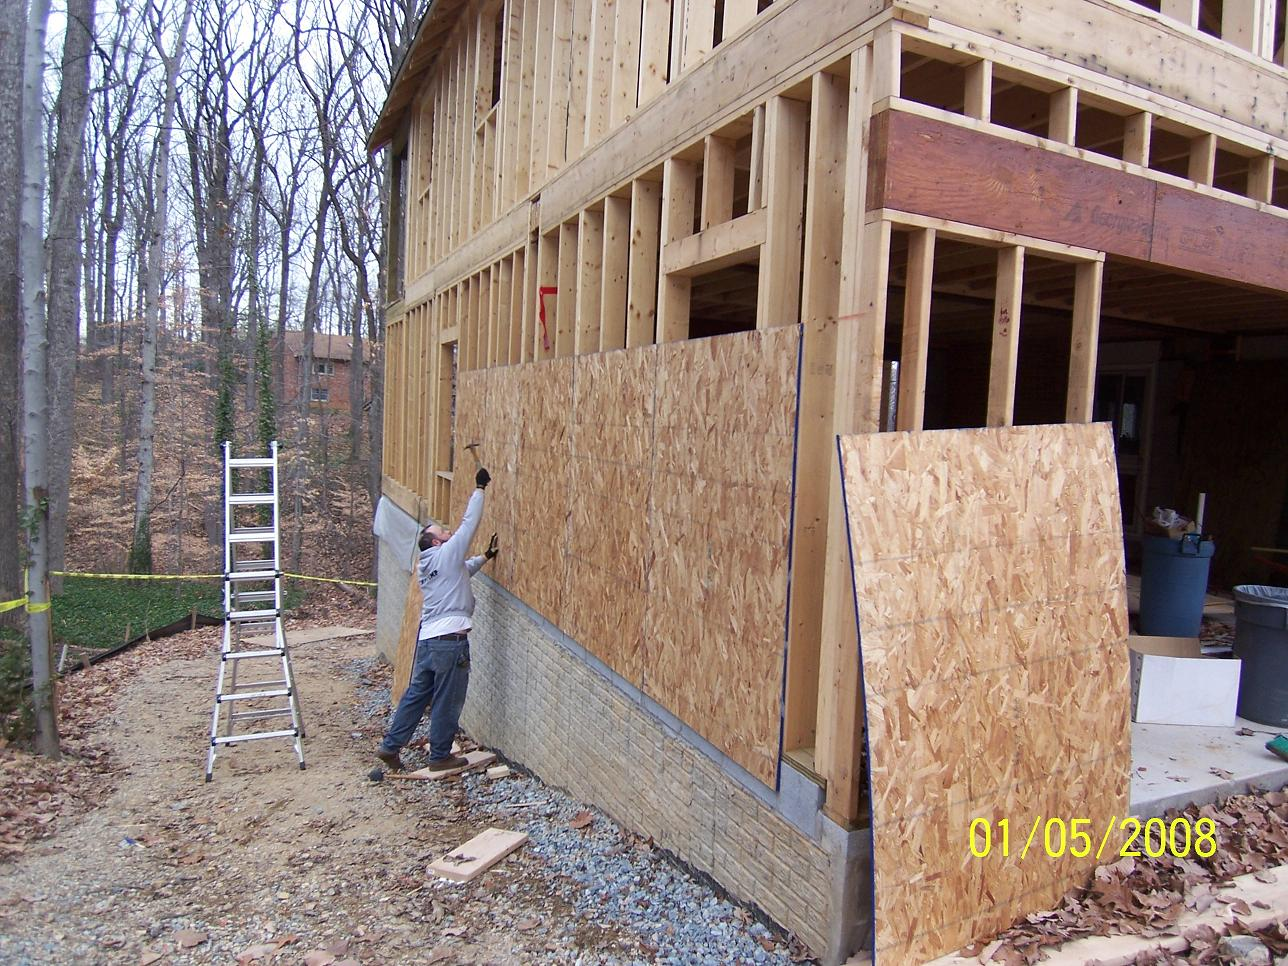 Architecture school tips what is sheathing for Plywood wall sheathing